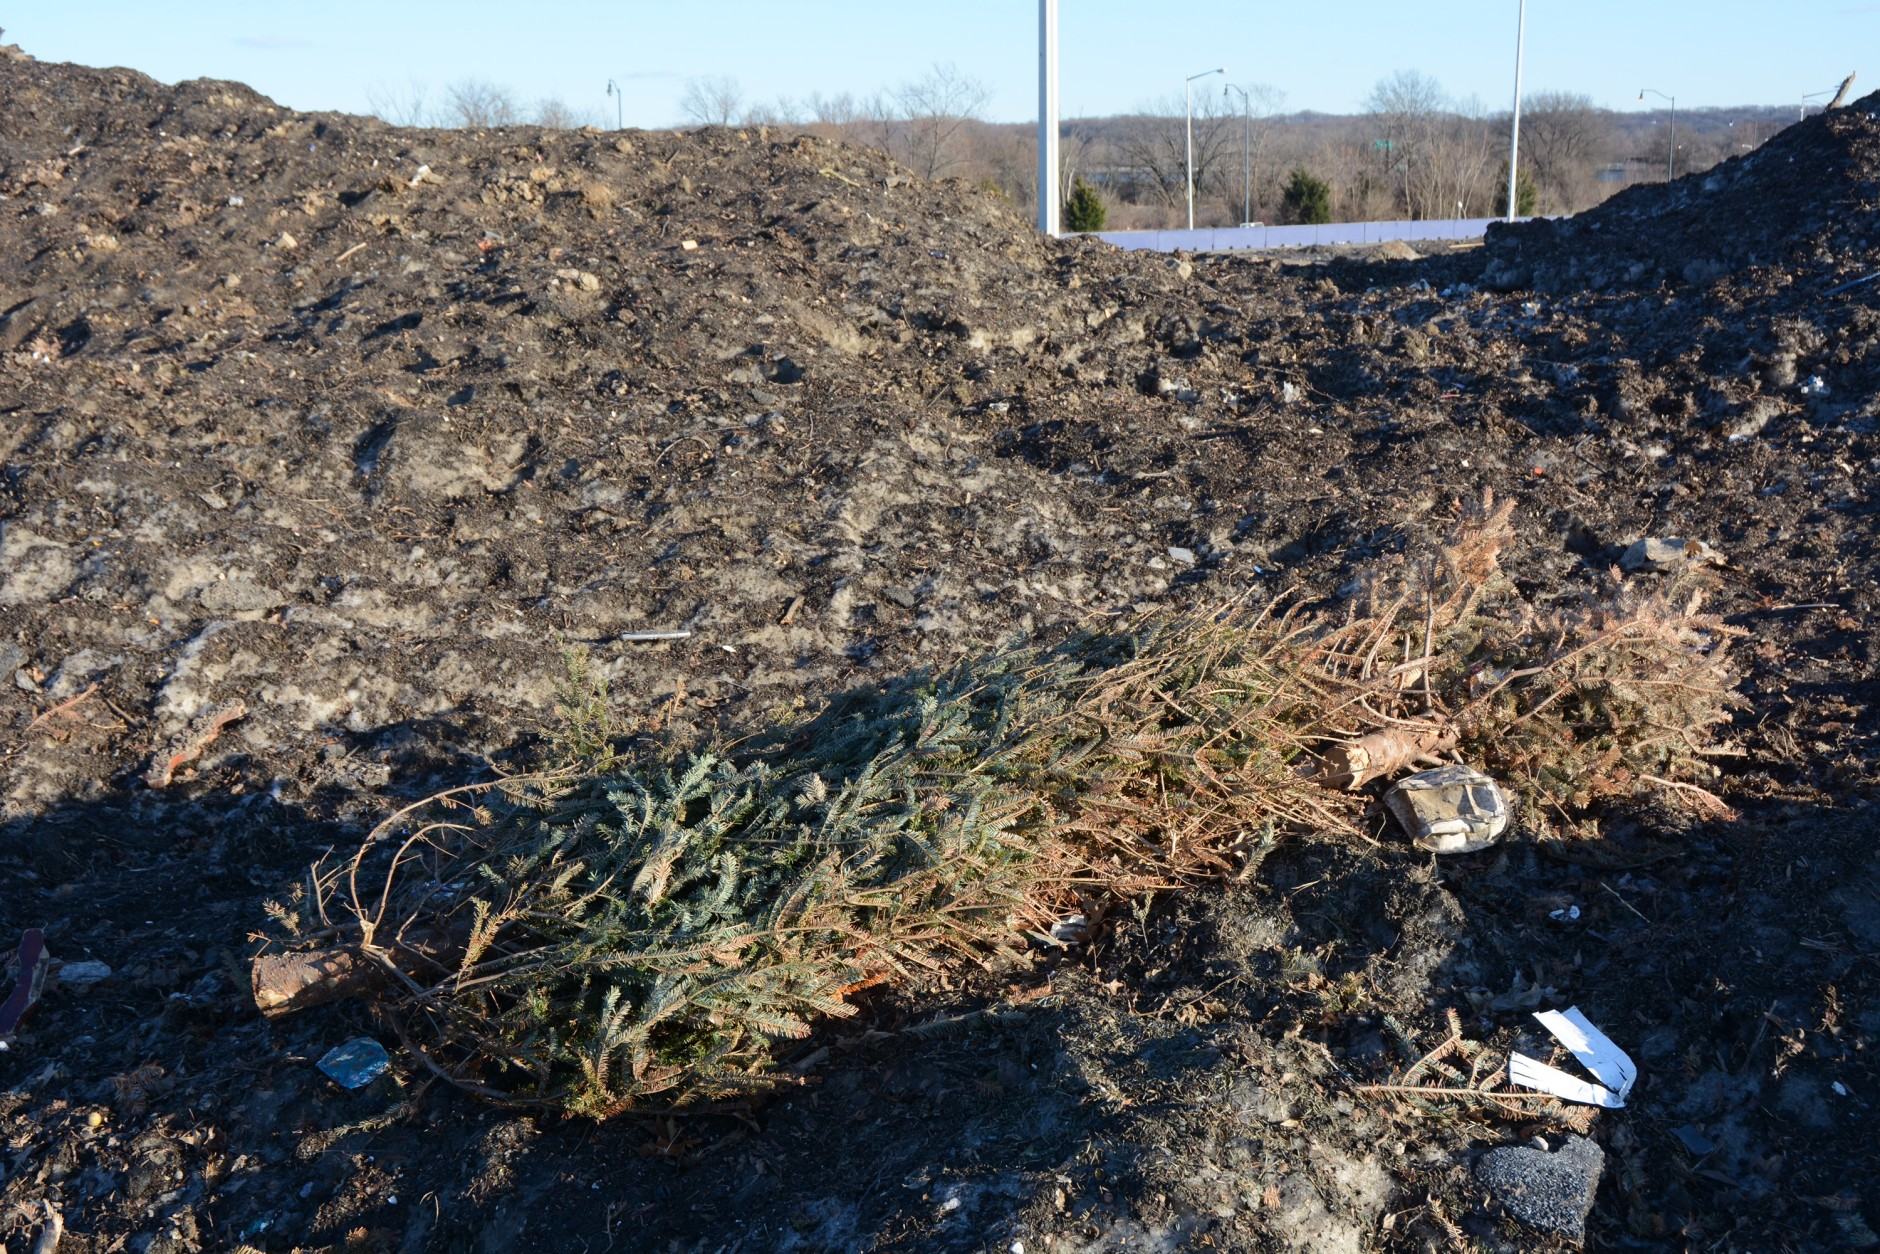 Christmas trees are the most common forms of debris in Lot 7. (WTOP/Dave Dildine)